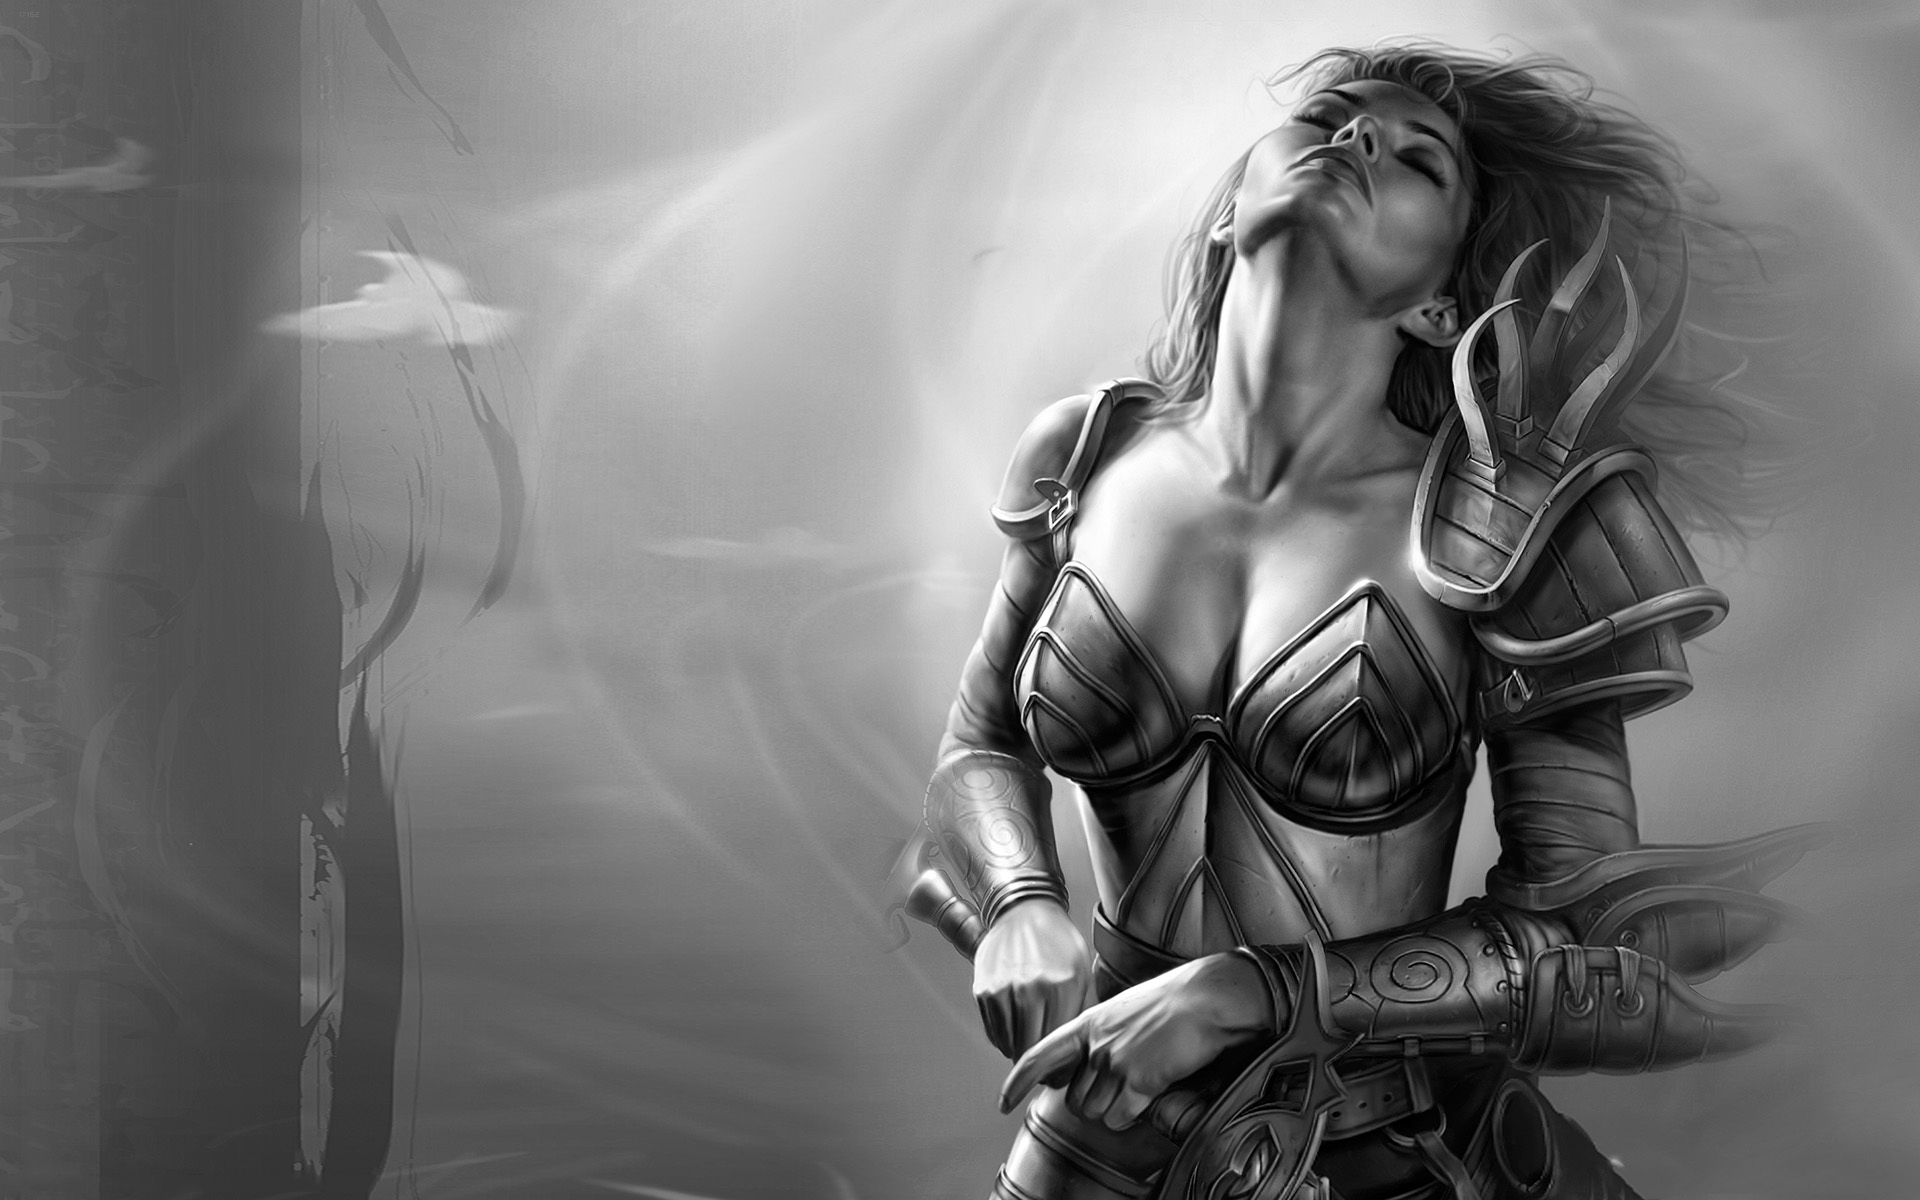 Woman armor monochrome